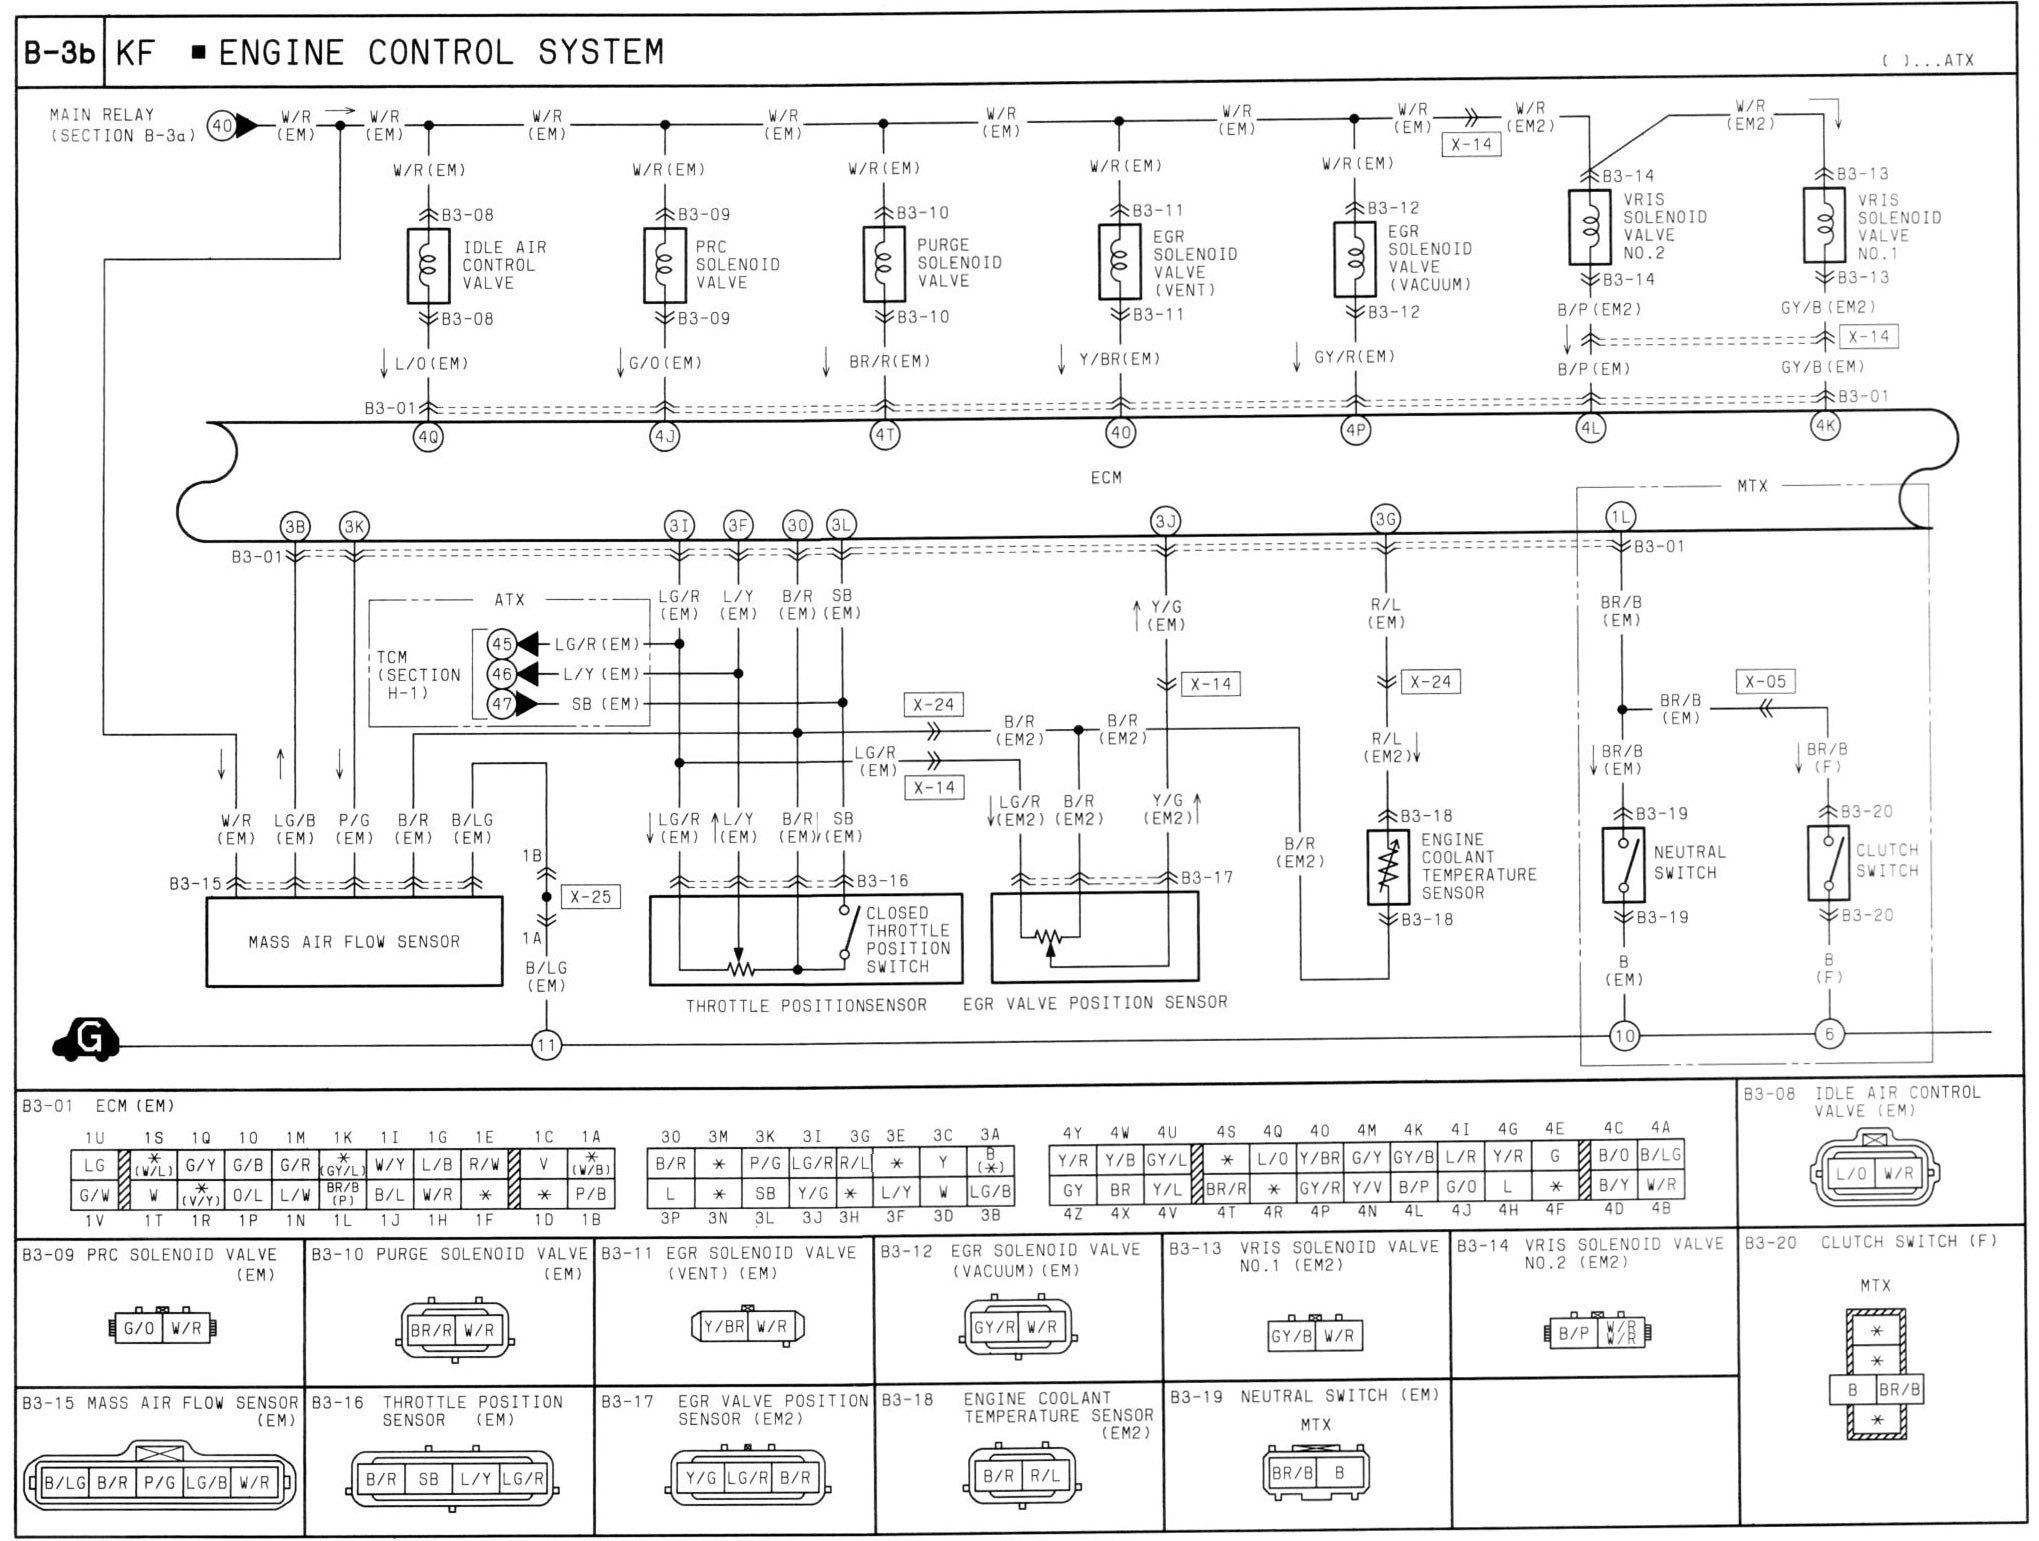 2010 mazda 3 engine diagram mazda3 a c wiring diagram best 2008 2010 jeep commander wiring diagram 2010 mazda 3 engine diagram mazda3 a c wiring diagram best 2008 mazda 3 ignition wiring diagram